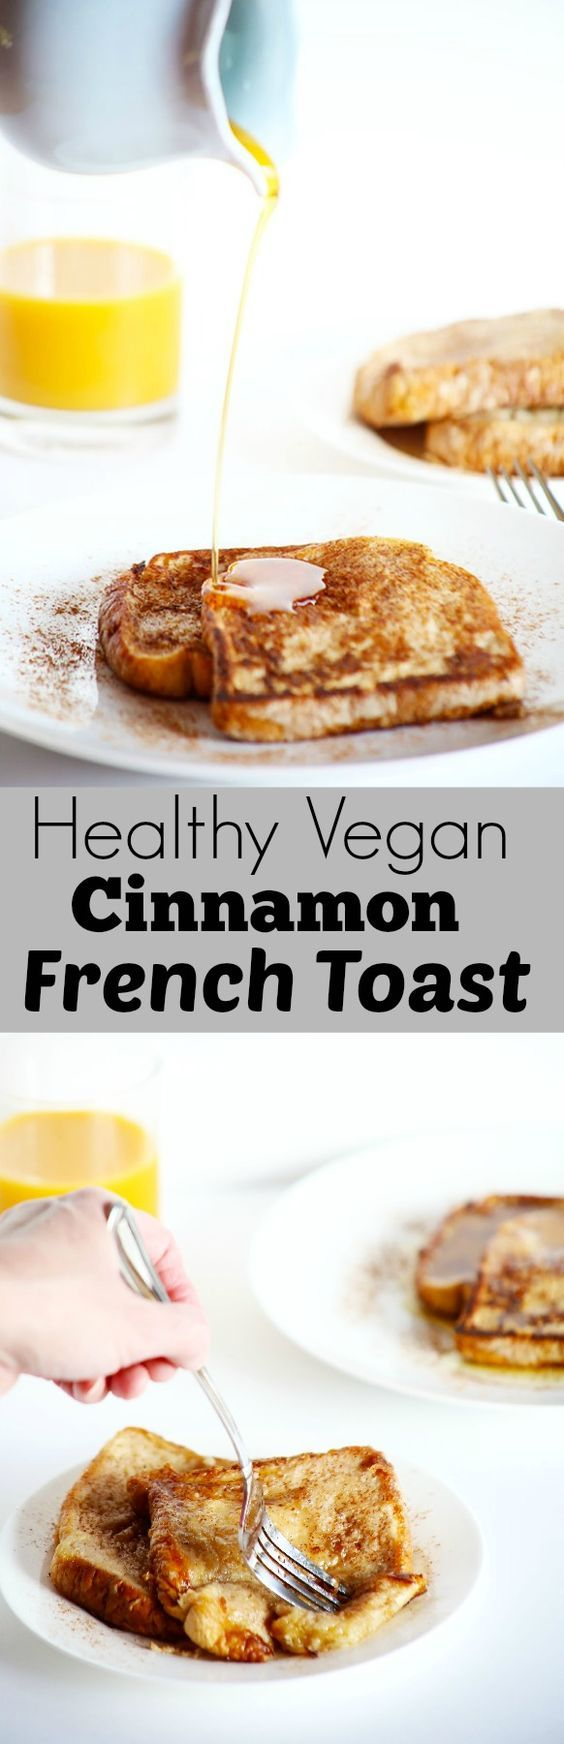 how to make easy french toast without cinnamon